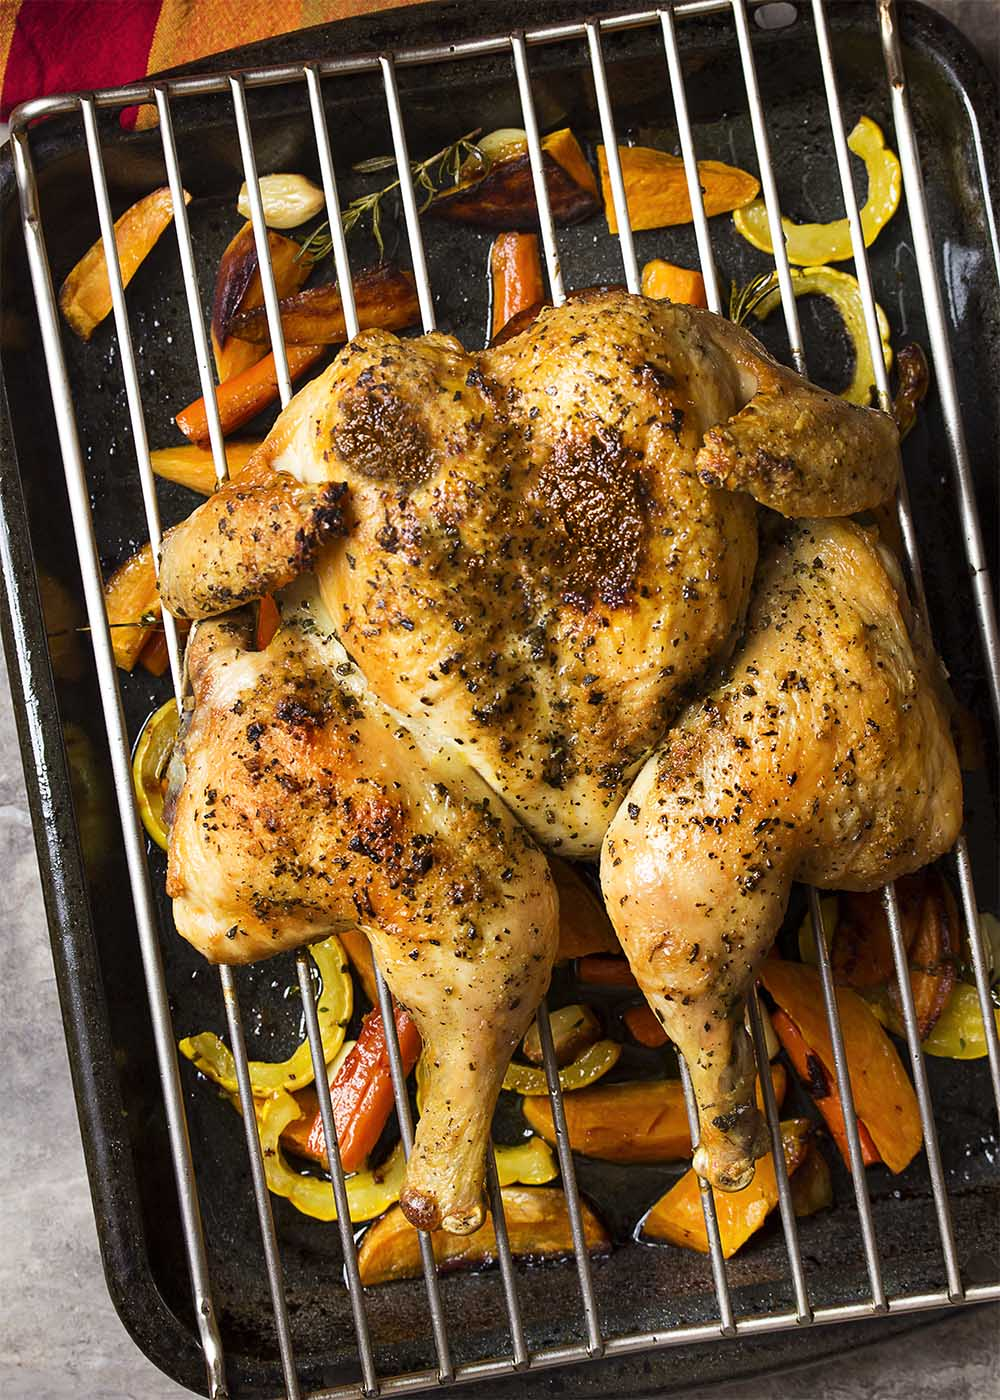 Roasted spatchcocked chicken on a rack in a roasting pan with roasted root vegetables.